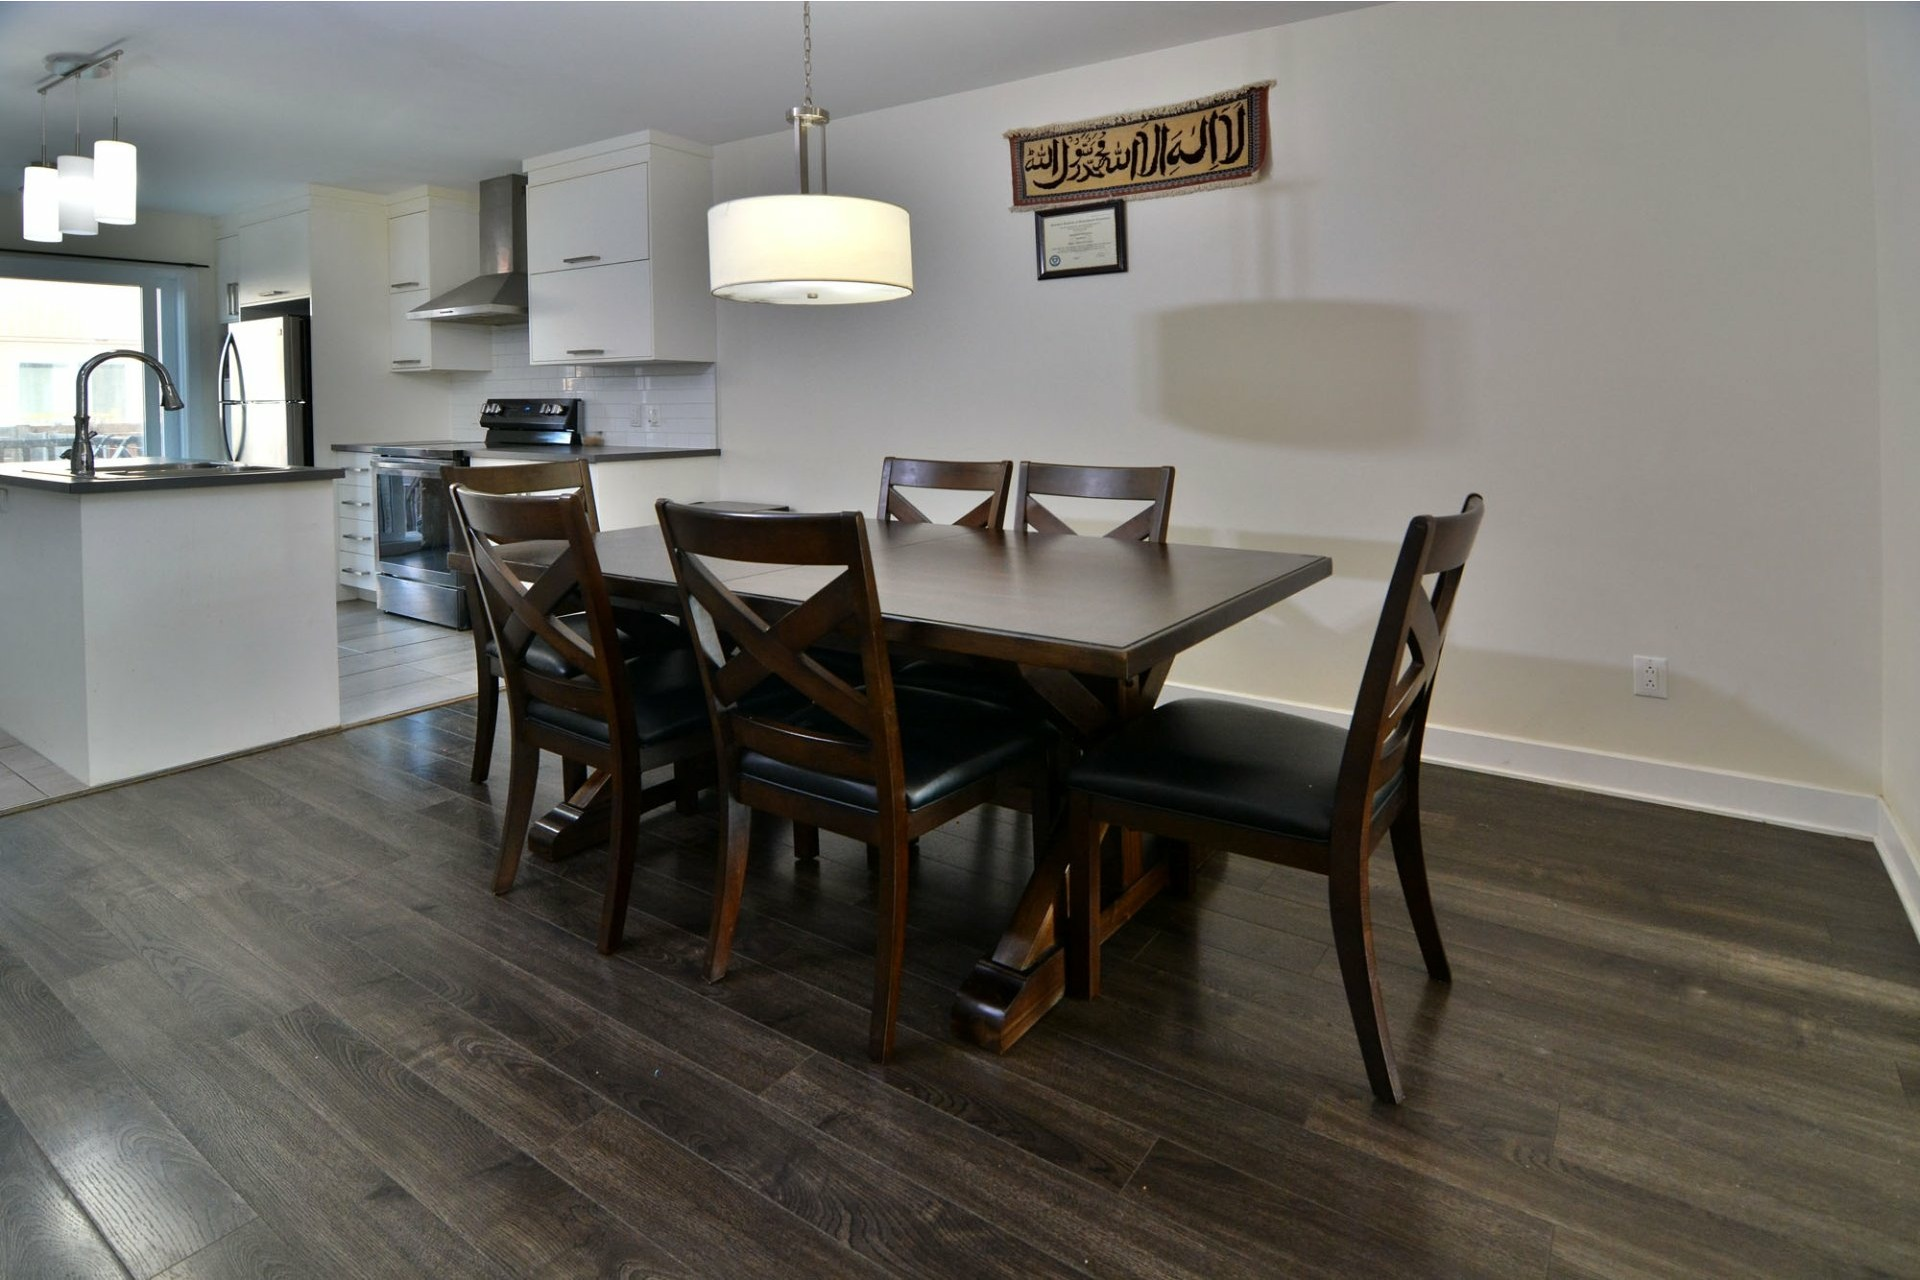 image 4 - House For sale Vaudreuil-Dorion - 7 rooms